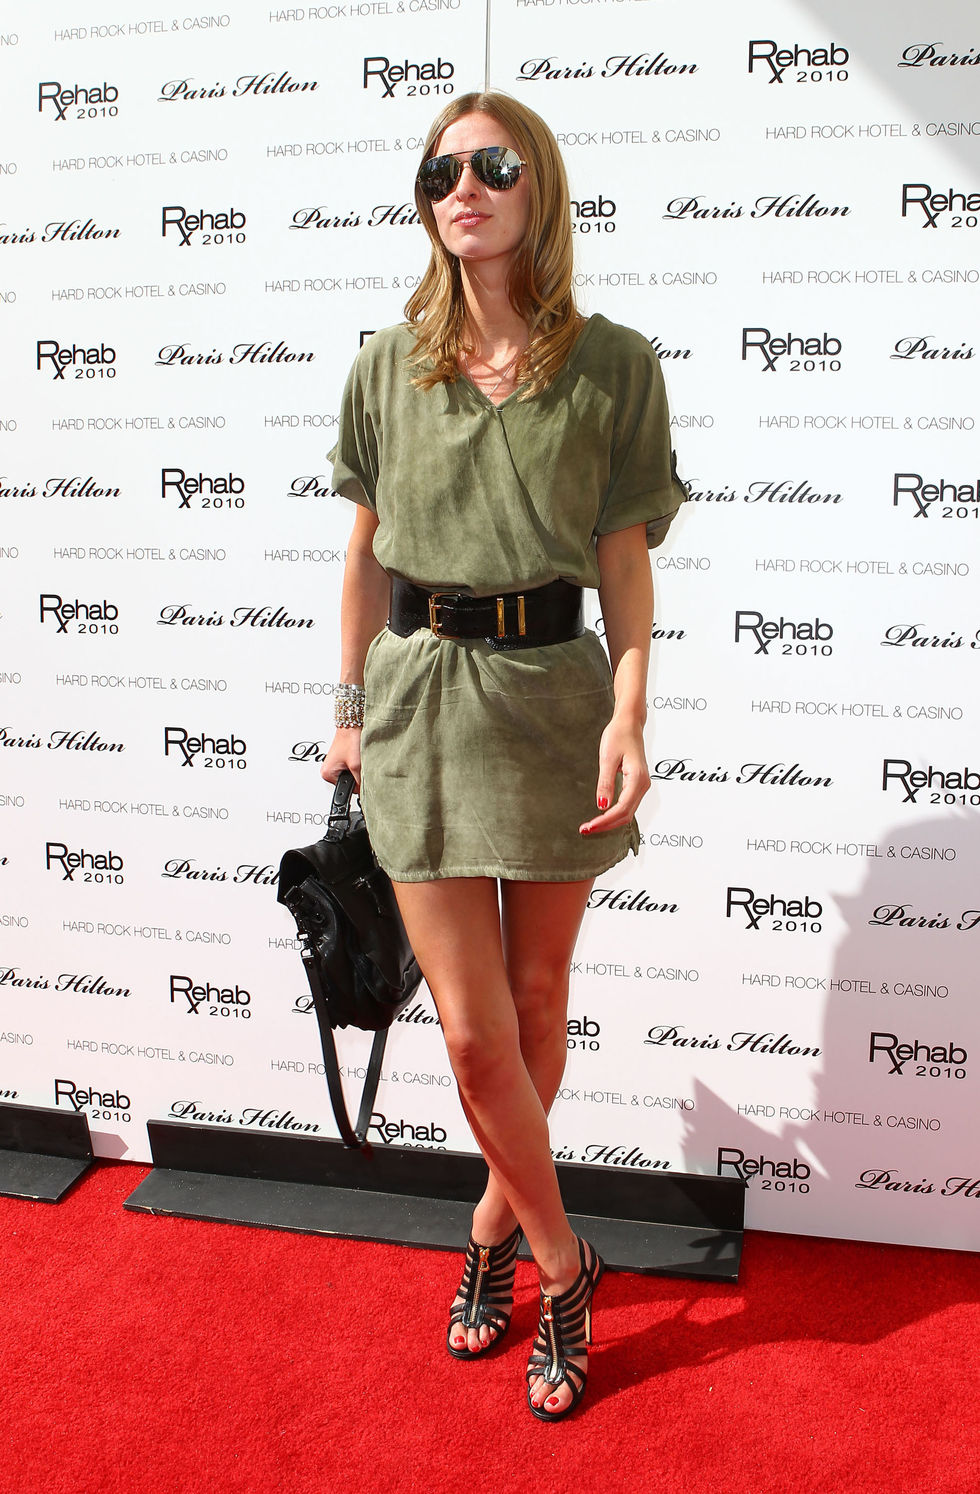 Nicky Hilton 2010 : nicky-hilton-leggy-candids-at-the-ultimate-daytime-pool-party-in-las-vegas-09